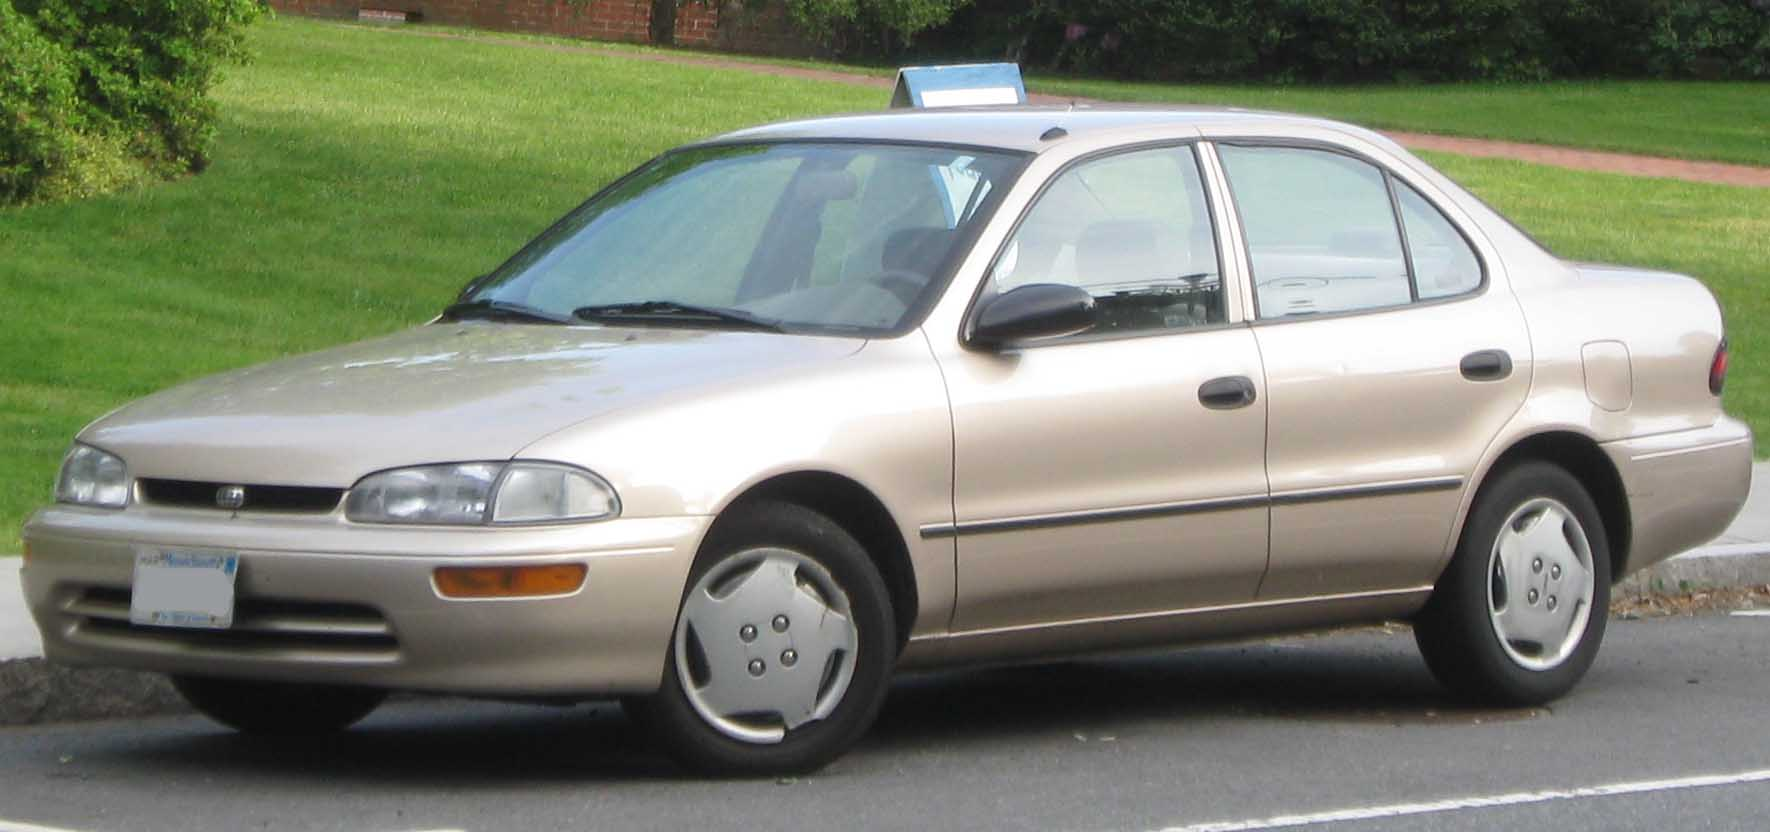 hight resolution of 2001 chevrolet geo prizm